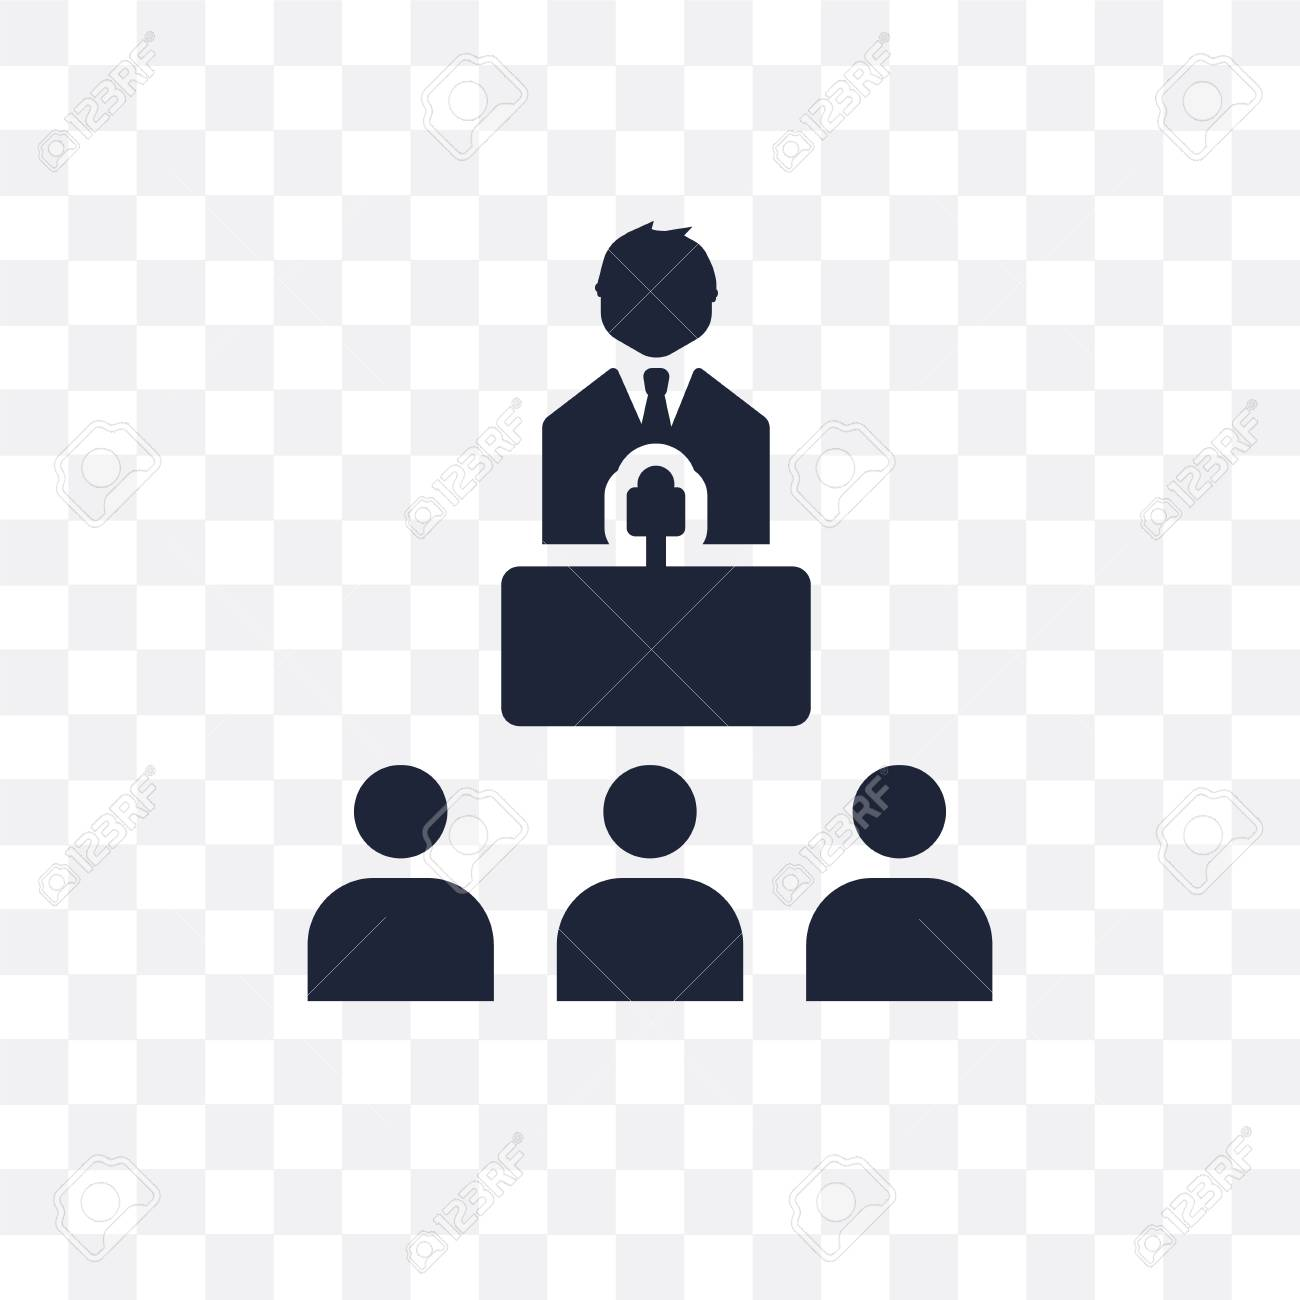 Leadership Transparent Icon Leadership Symbol Design From Business Royalty Free Cliparts Vectors And Stock Illustration Image 111325544